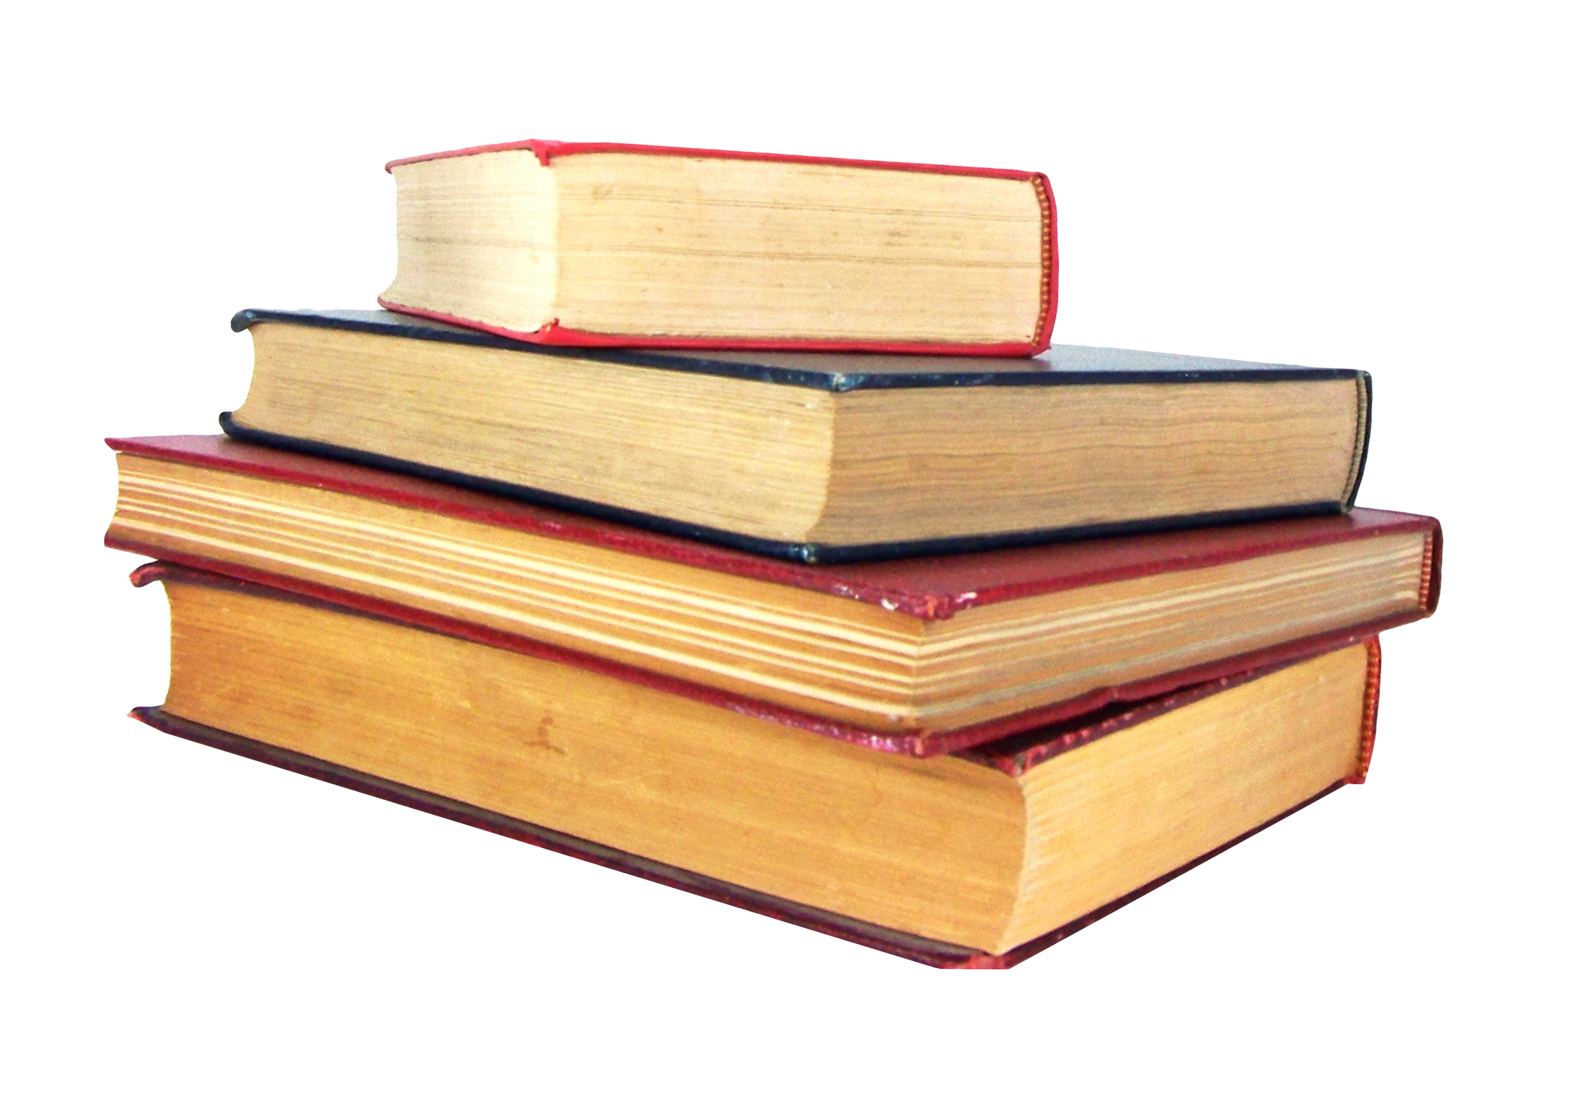 Stack Of Books PNG Image PngPix